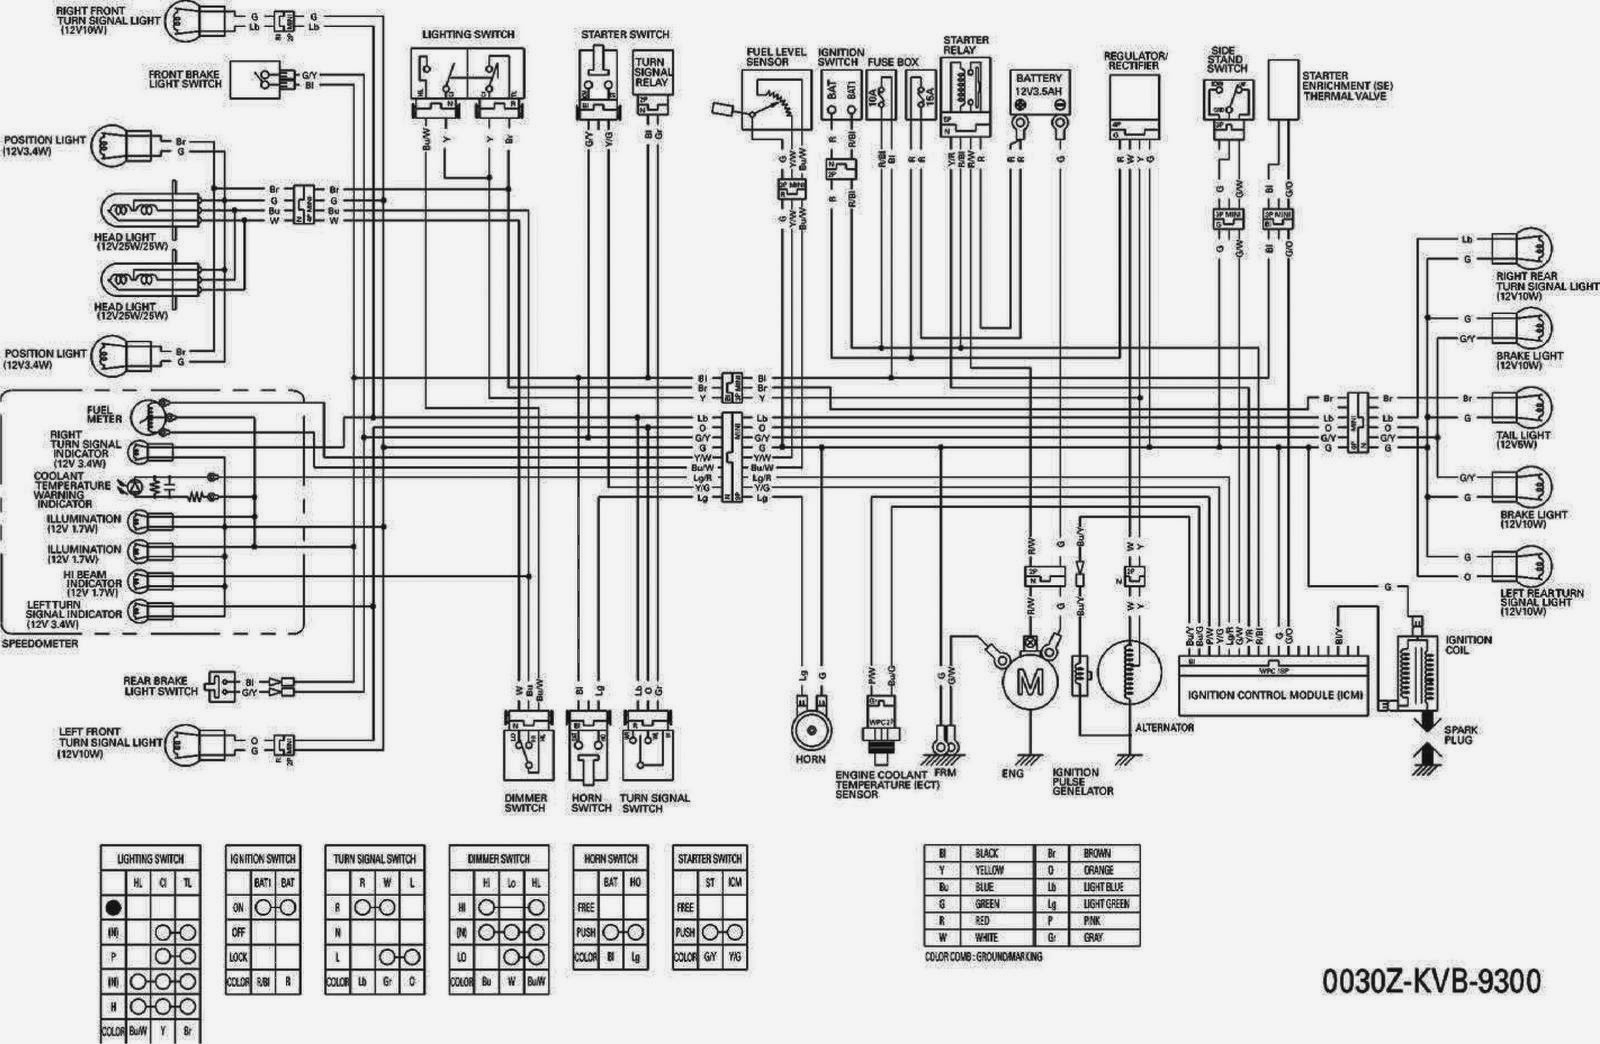 1972 honda xl250 wiring diagram